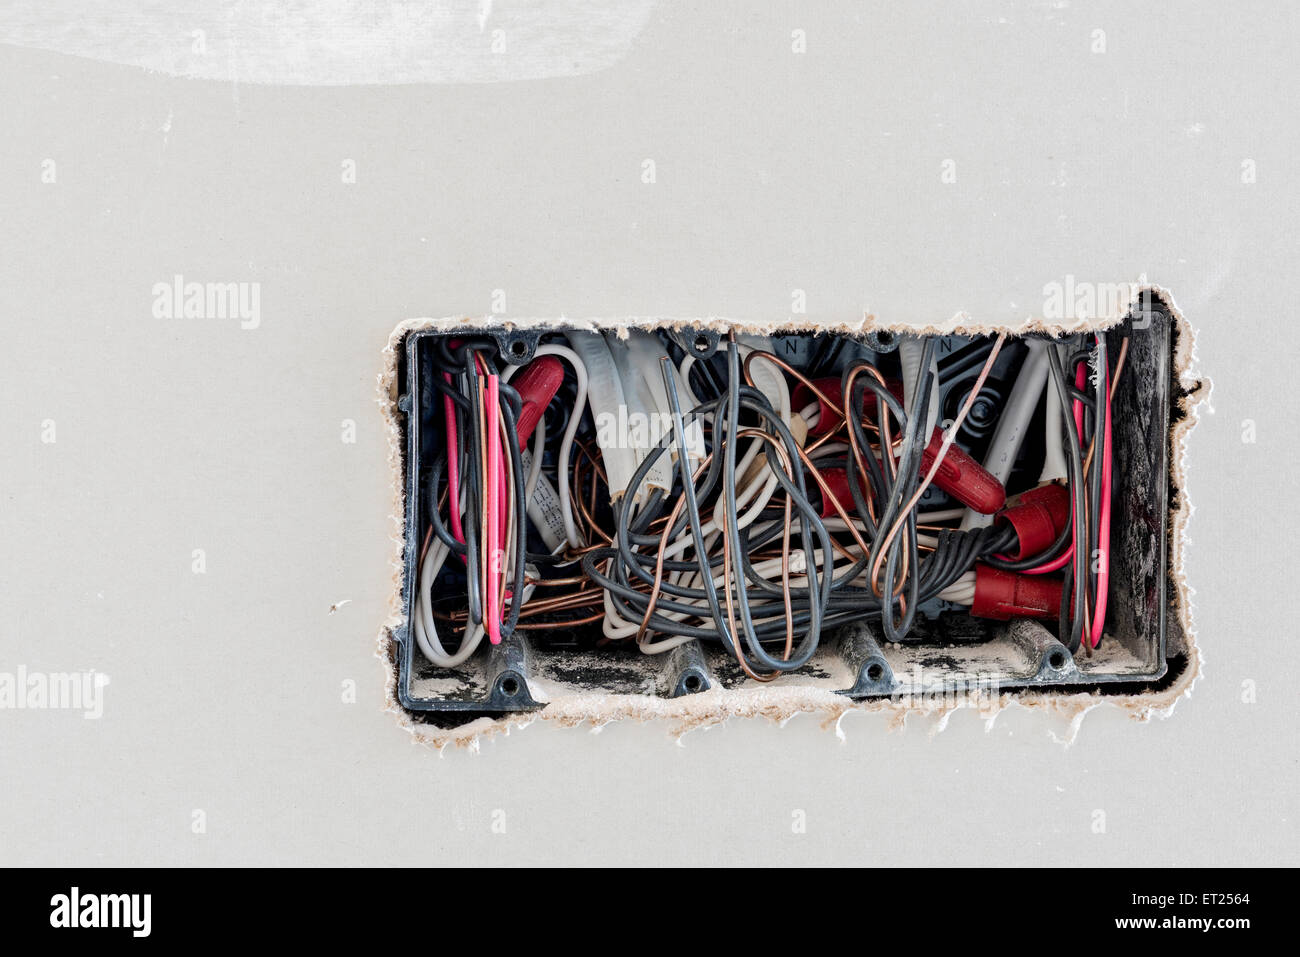 Wires Wiring Electrical Construction Stockfotos & Wires Wiring ...